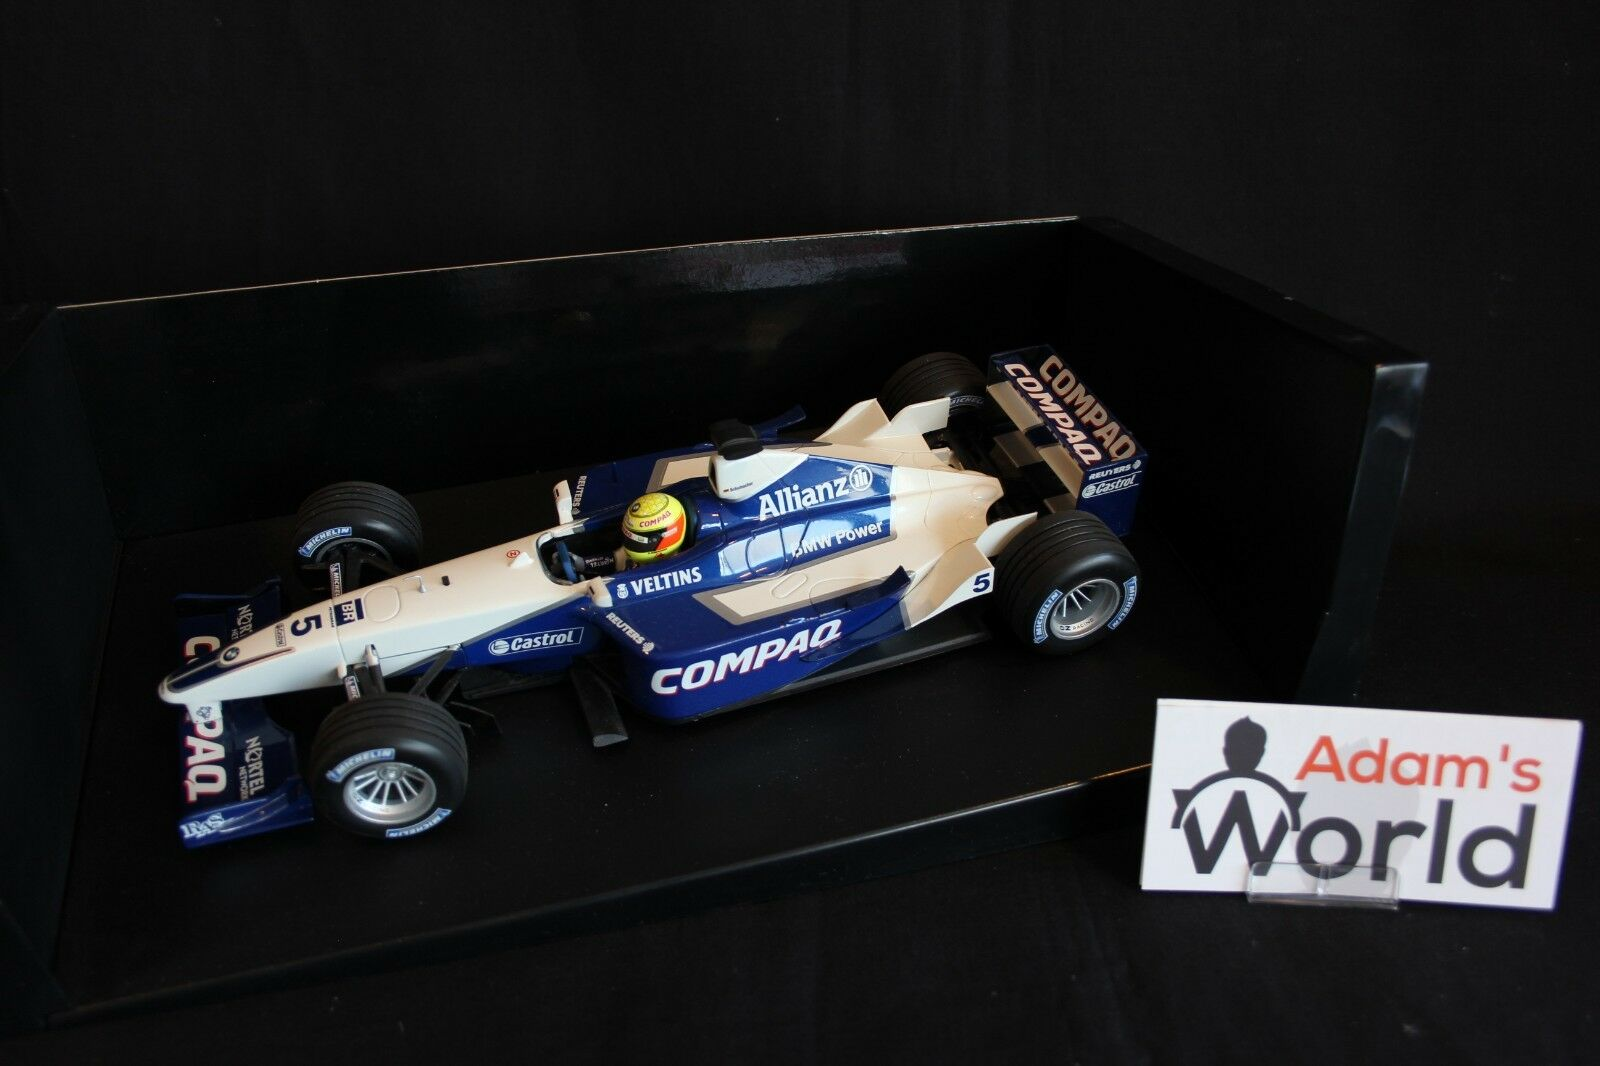 Minichamps Williams BMW FW24 2002 1 18  5 Ralf Schumacher (GER)